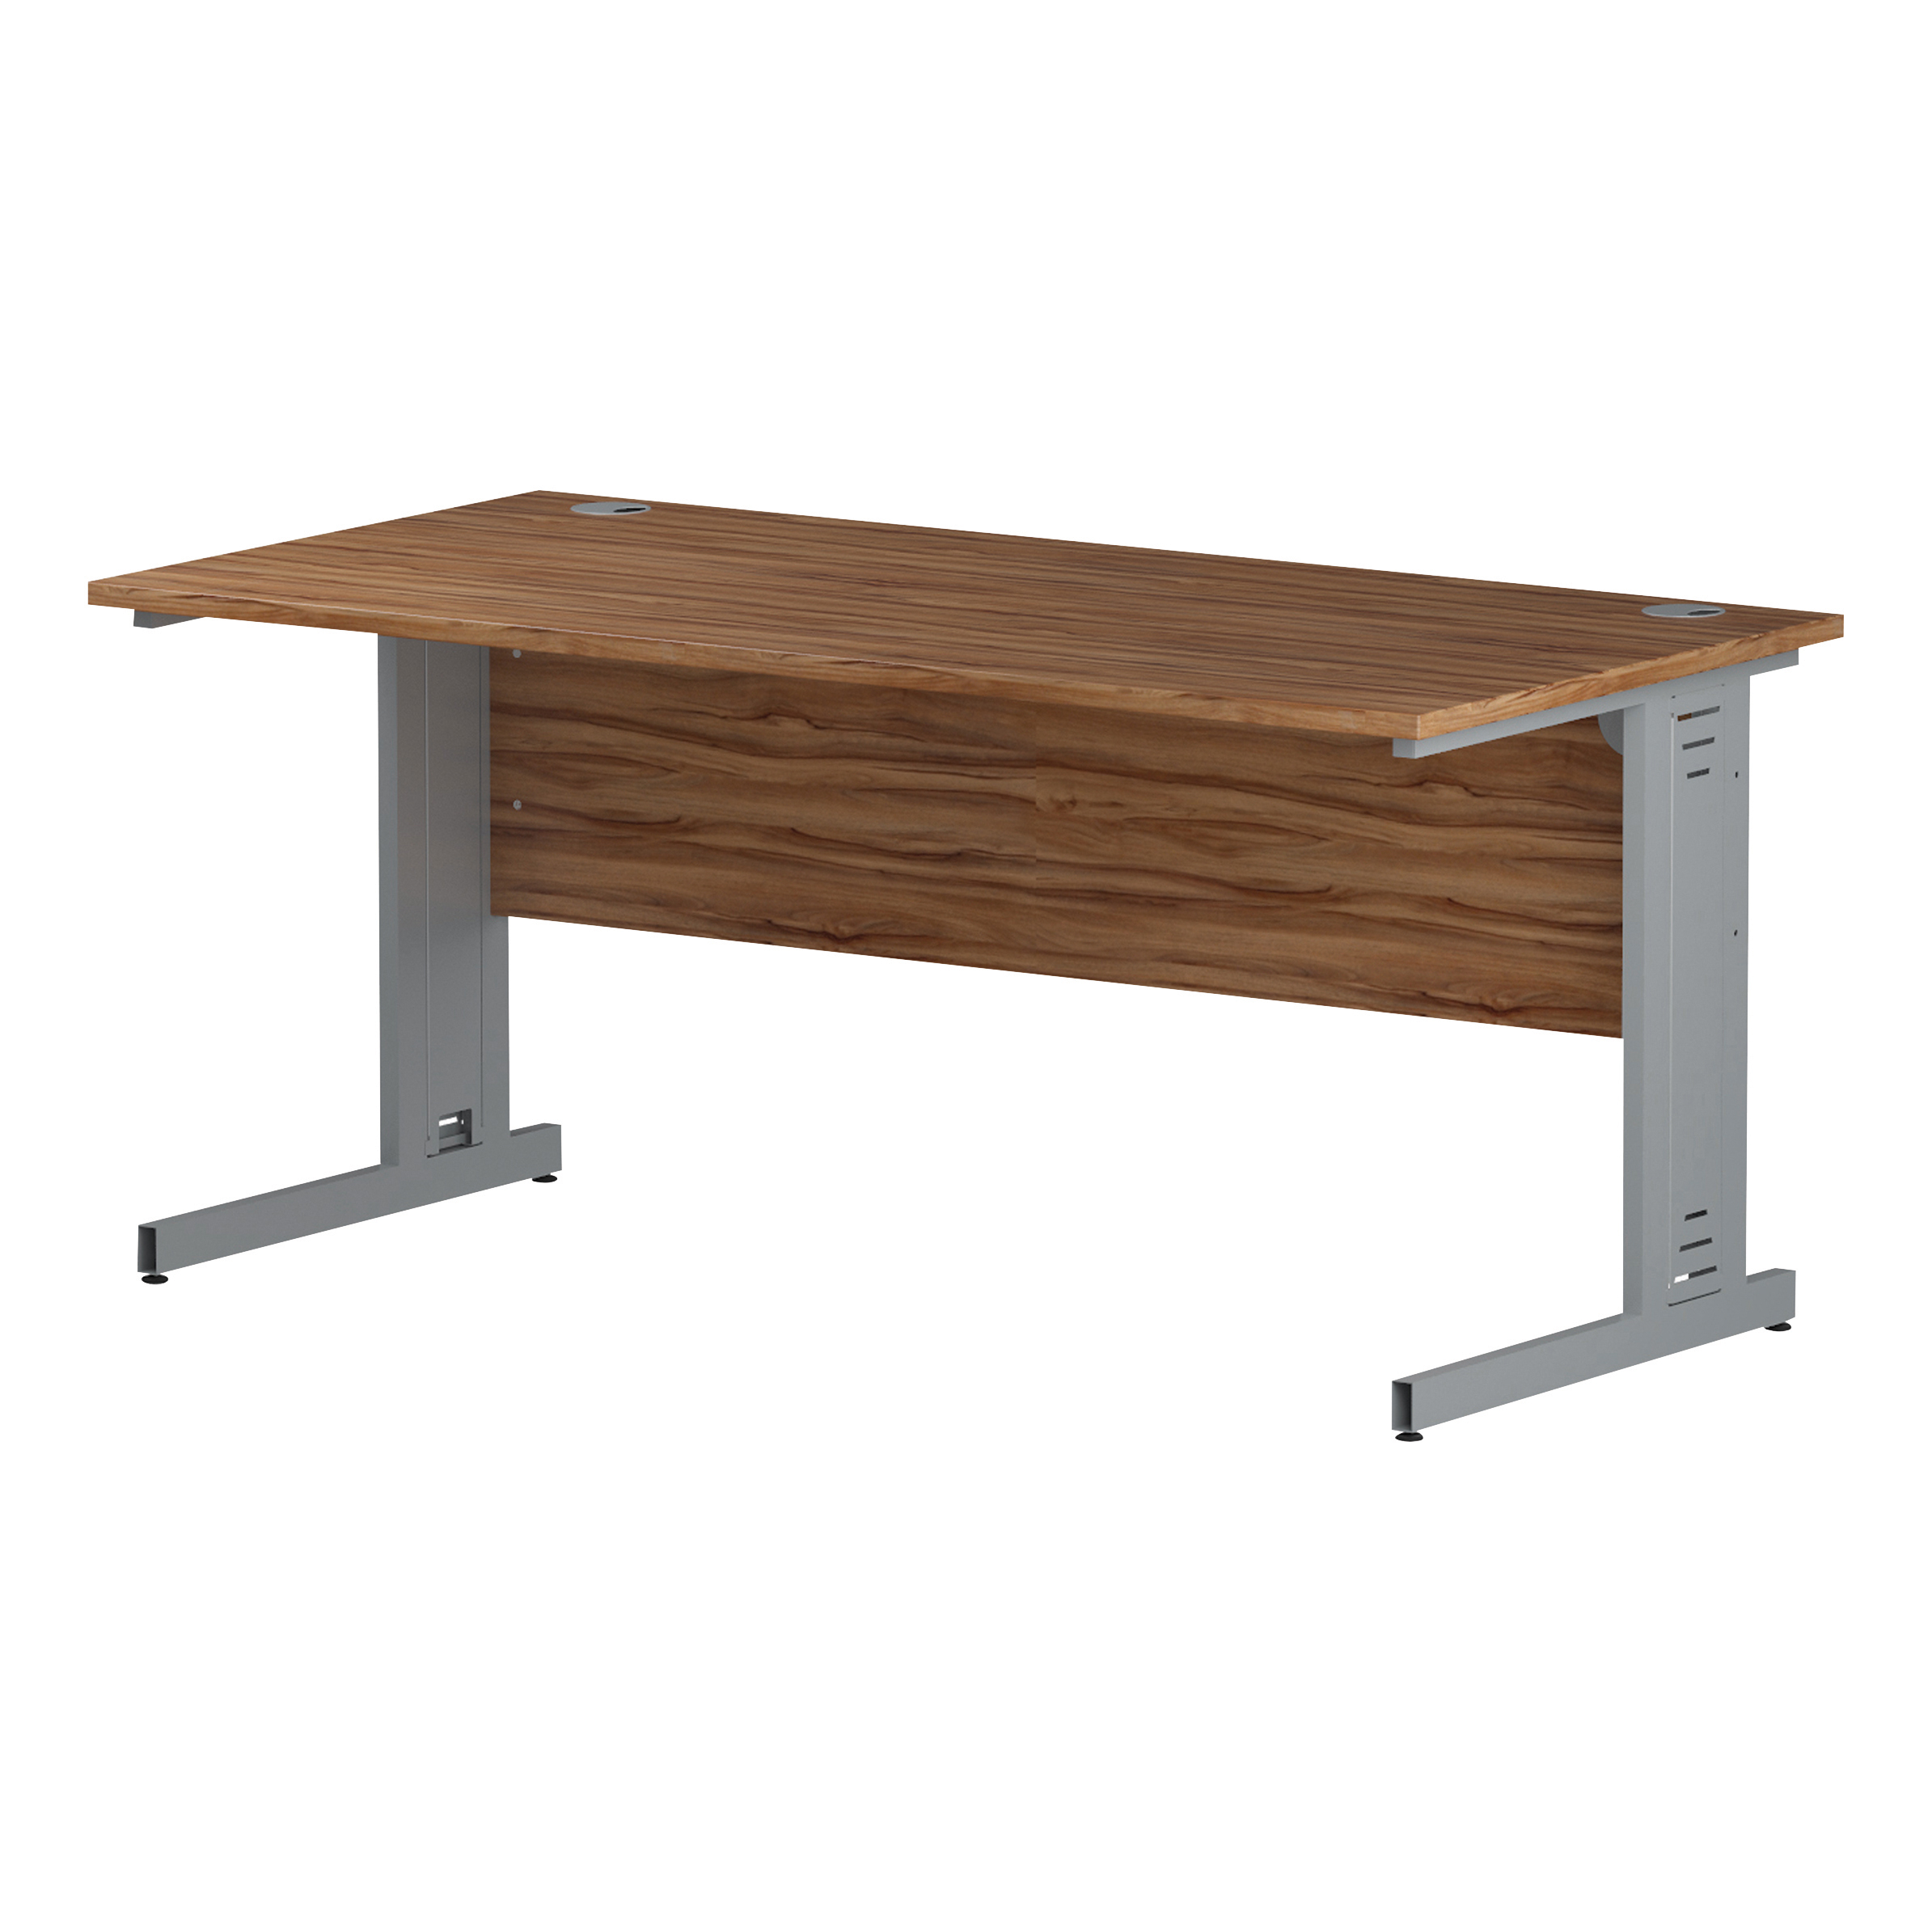 Trexus Rectangular Desk Silver Cable Managed Leg 1600x800mm Walnut Ref I001992